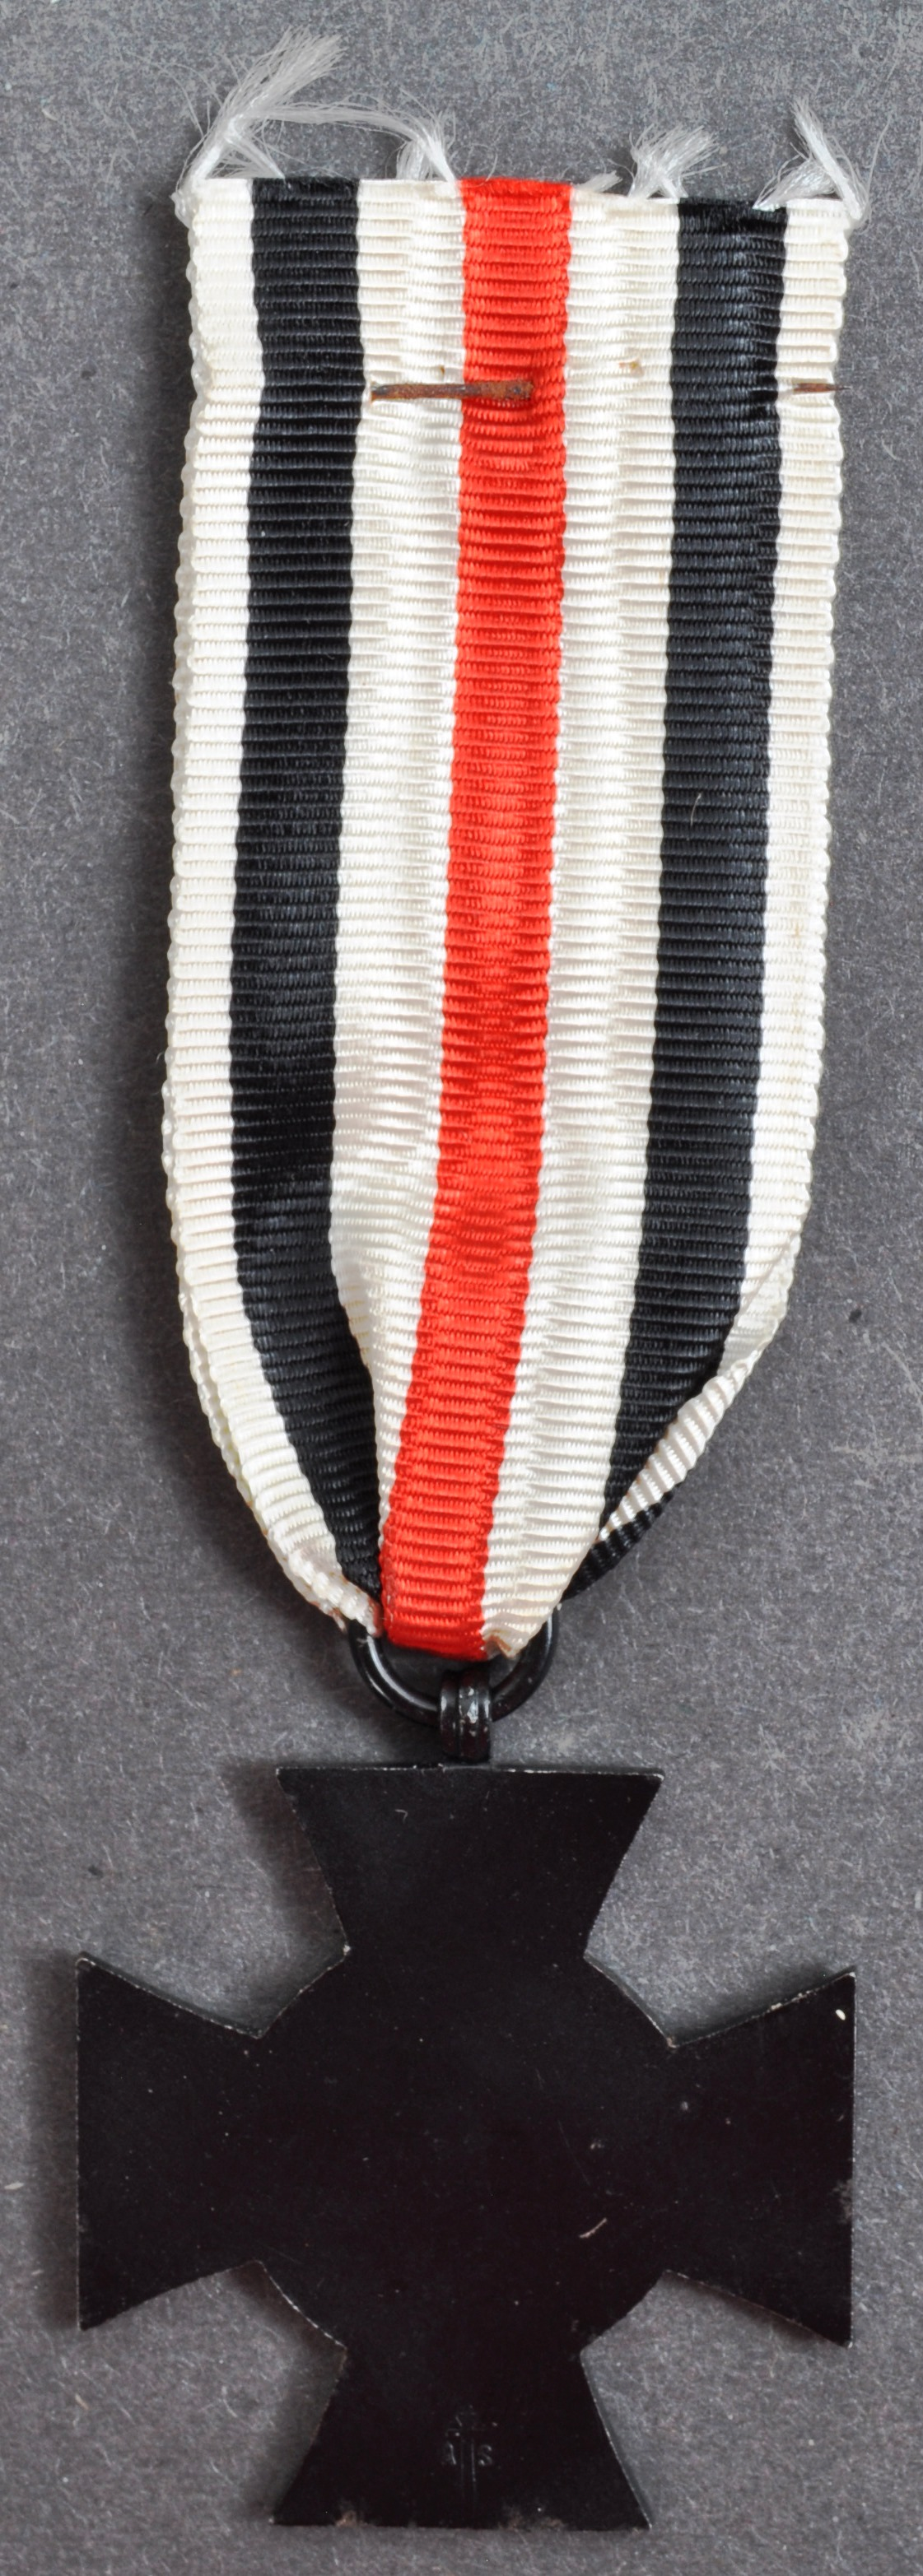 ORIGINAL WWI FIRST WORLD WAR BLACK HONOUR CROSS MEDAL & PAPERS - Image 4 of 5